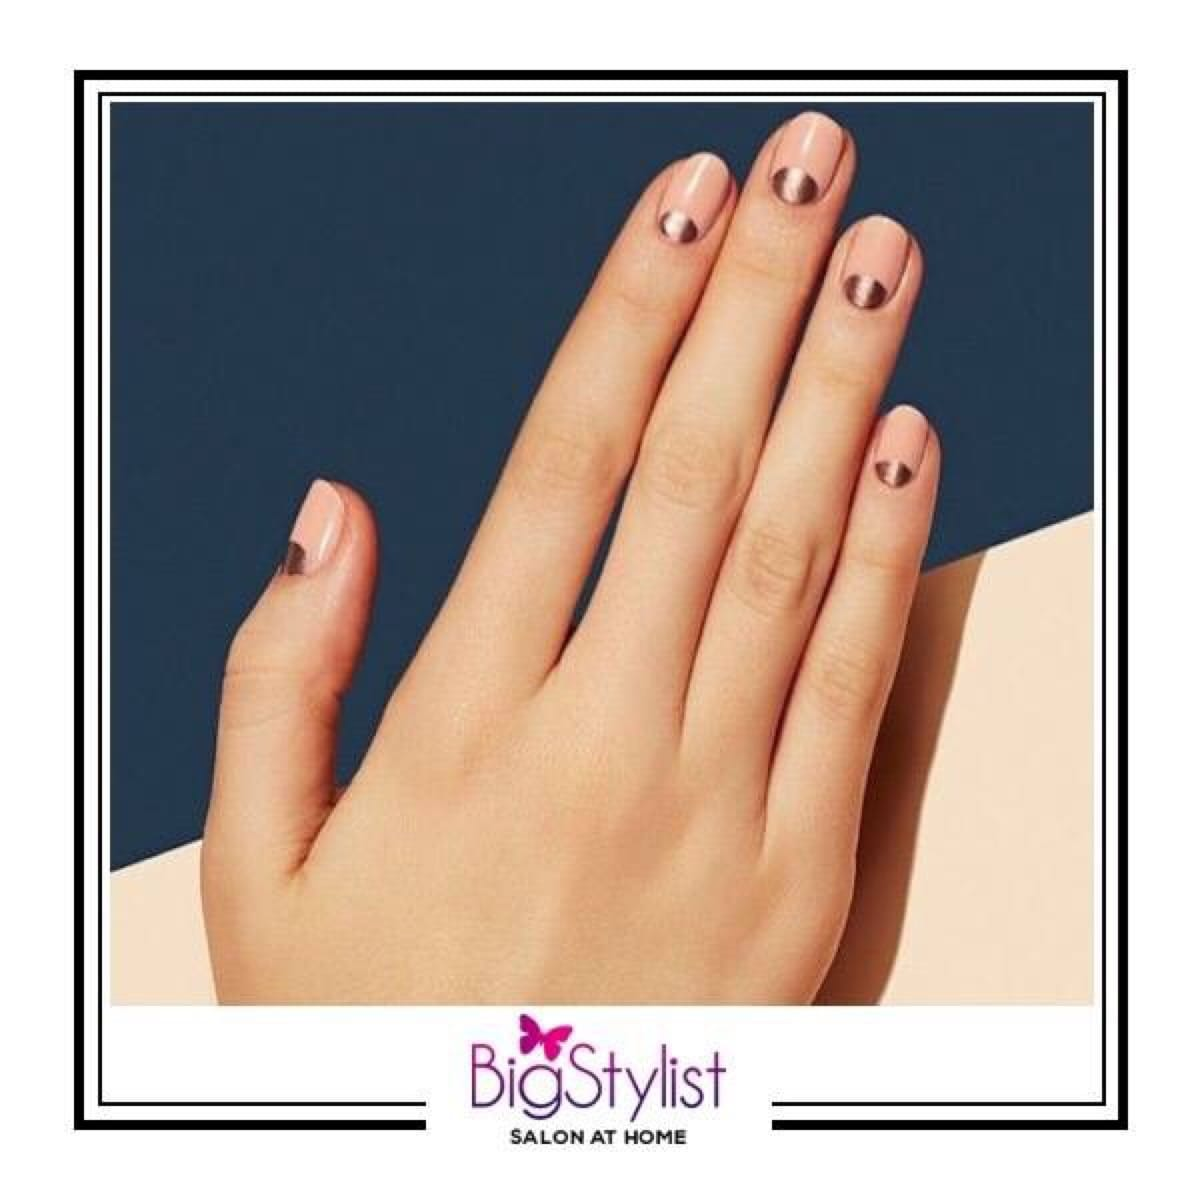 Metallic and minimal nail art inspiration for your next manicure! Like this? Say a Hi on WhatsApp at 9920465699 for more such fantastic stuff! #metallic #minimal #manicure #nails #bronze #nailart #inspiration #stayhomebeautiful #BigStylist